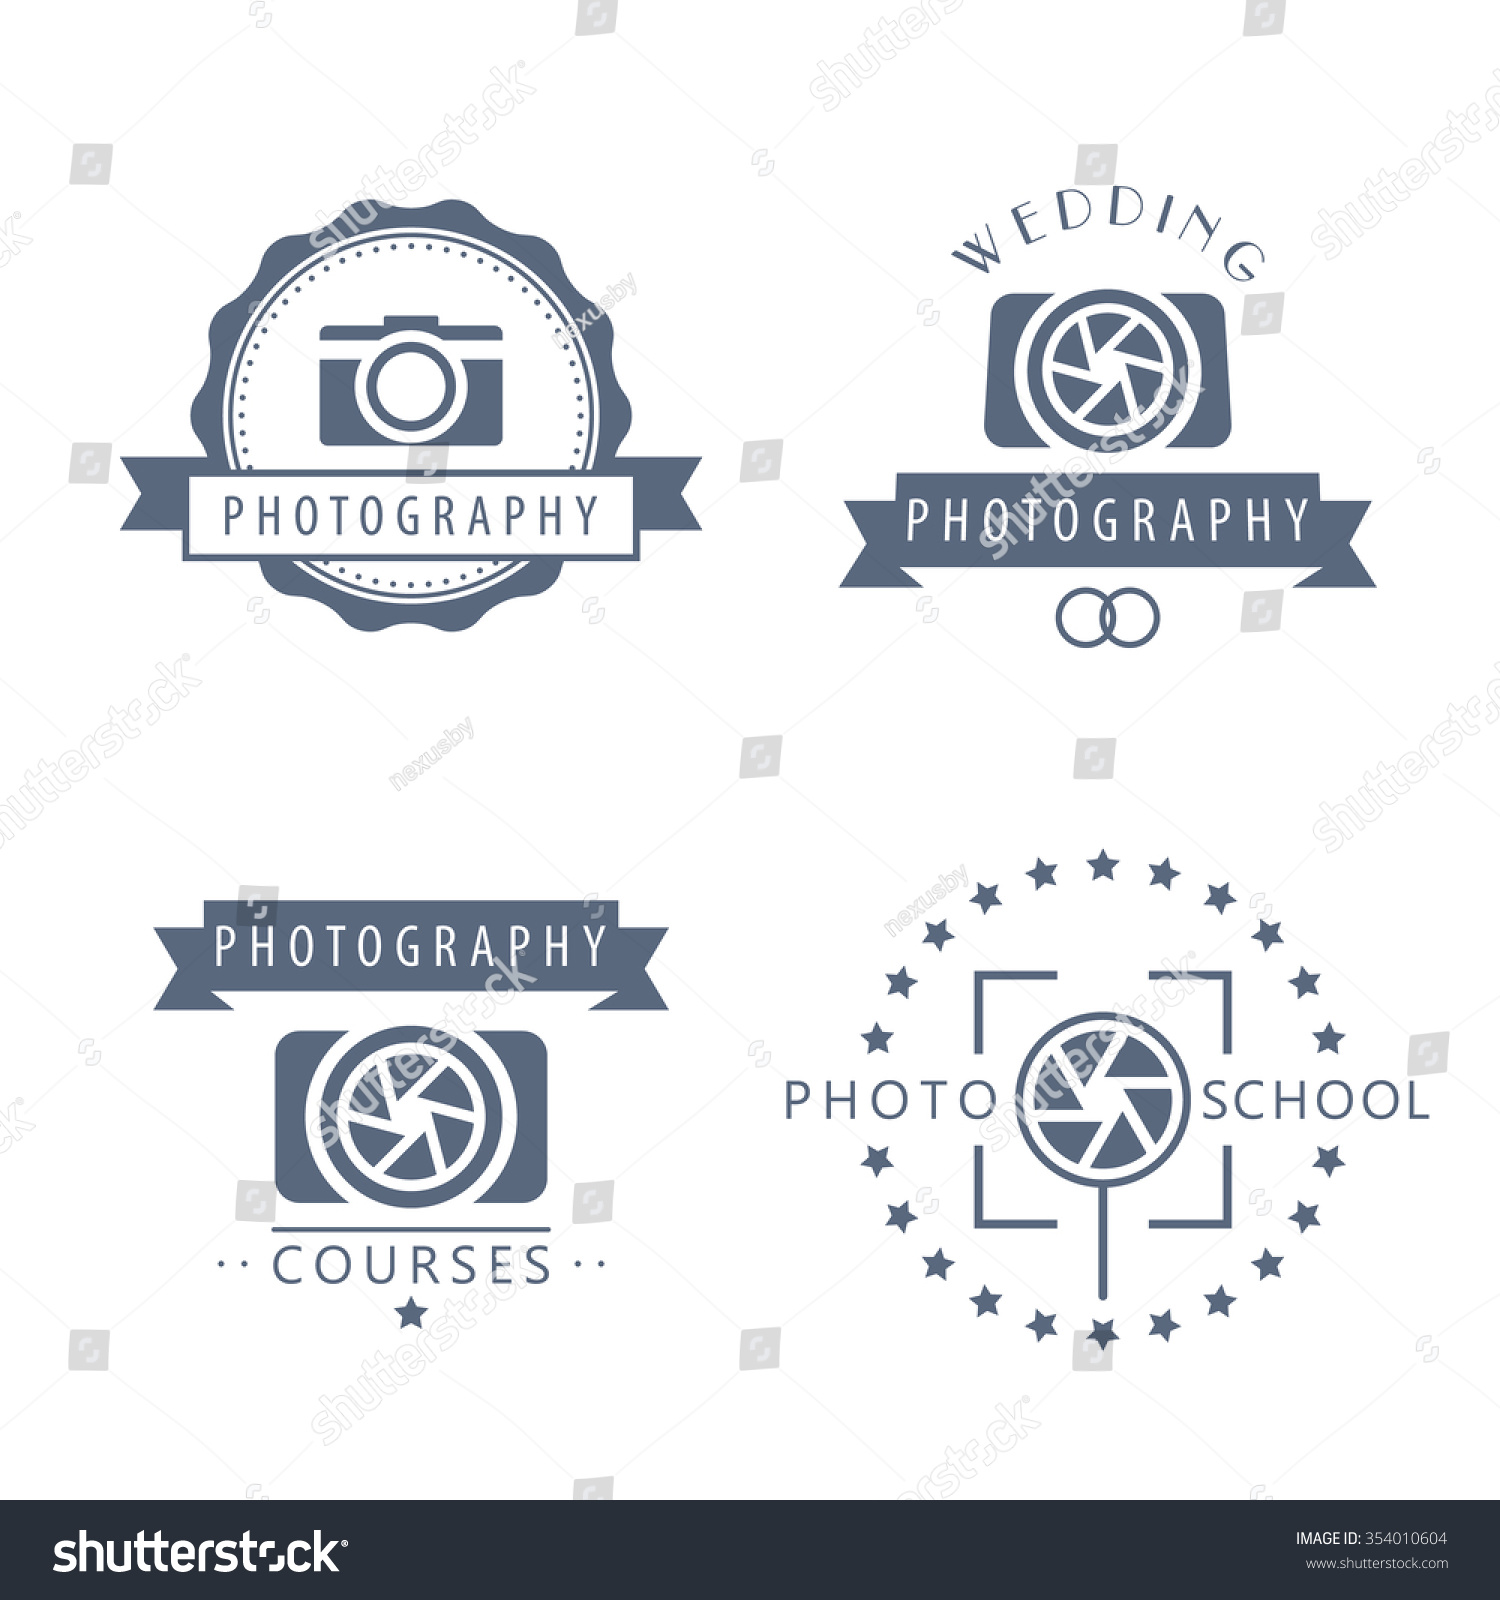 Photography college degree subjects